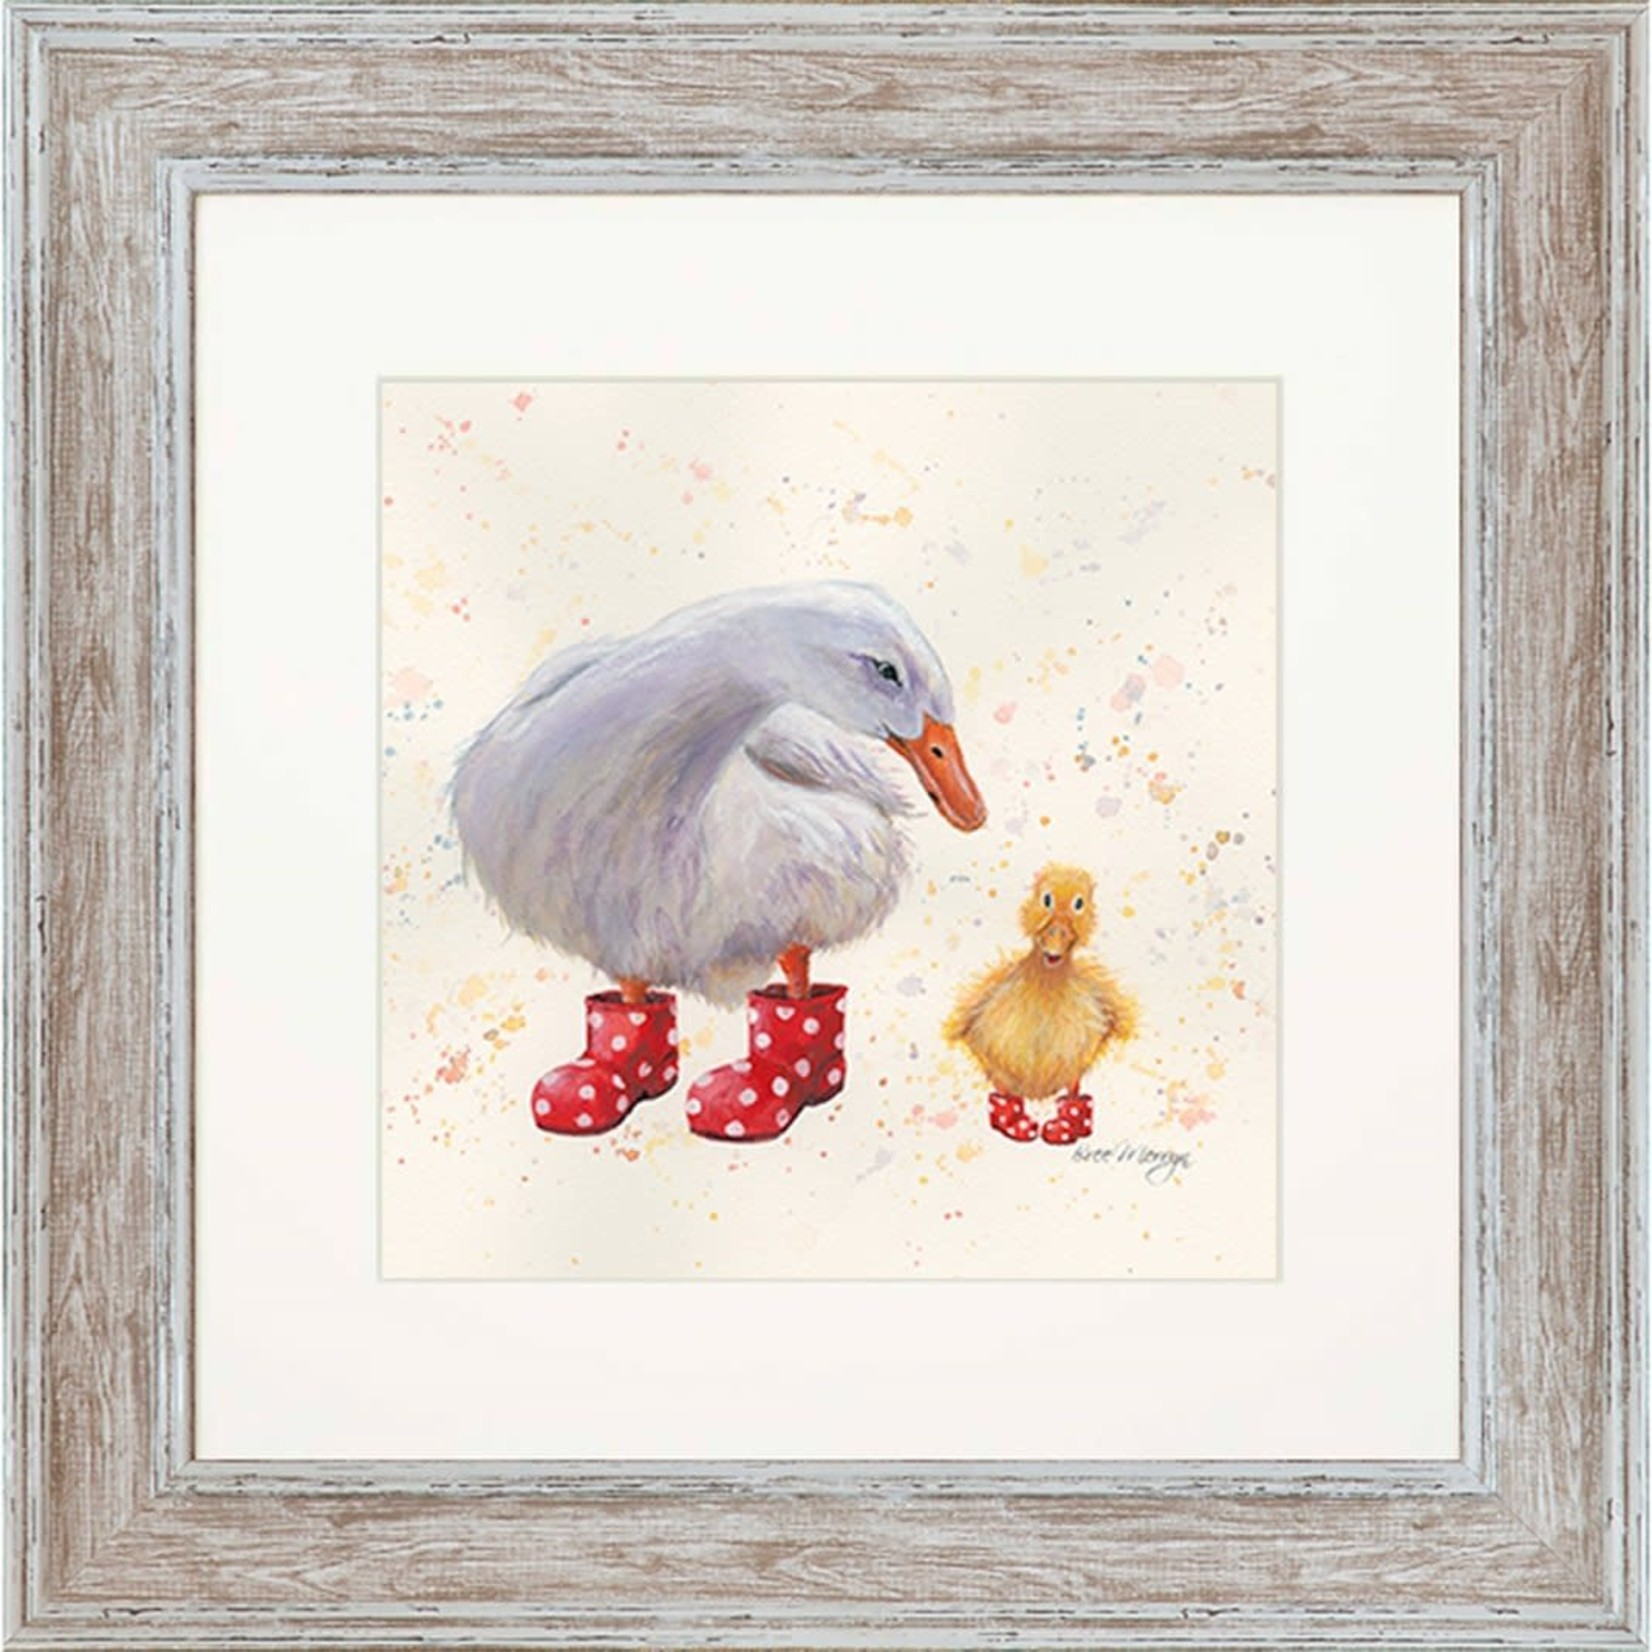 Bree Merryn Darcey and Daffodil in Boots Print and Mount Distressed Wood Effect Frame 48cm